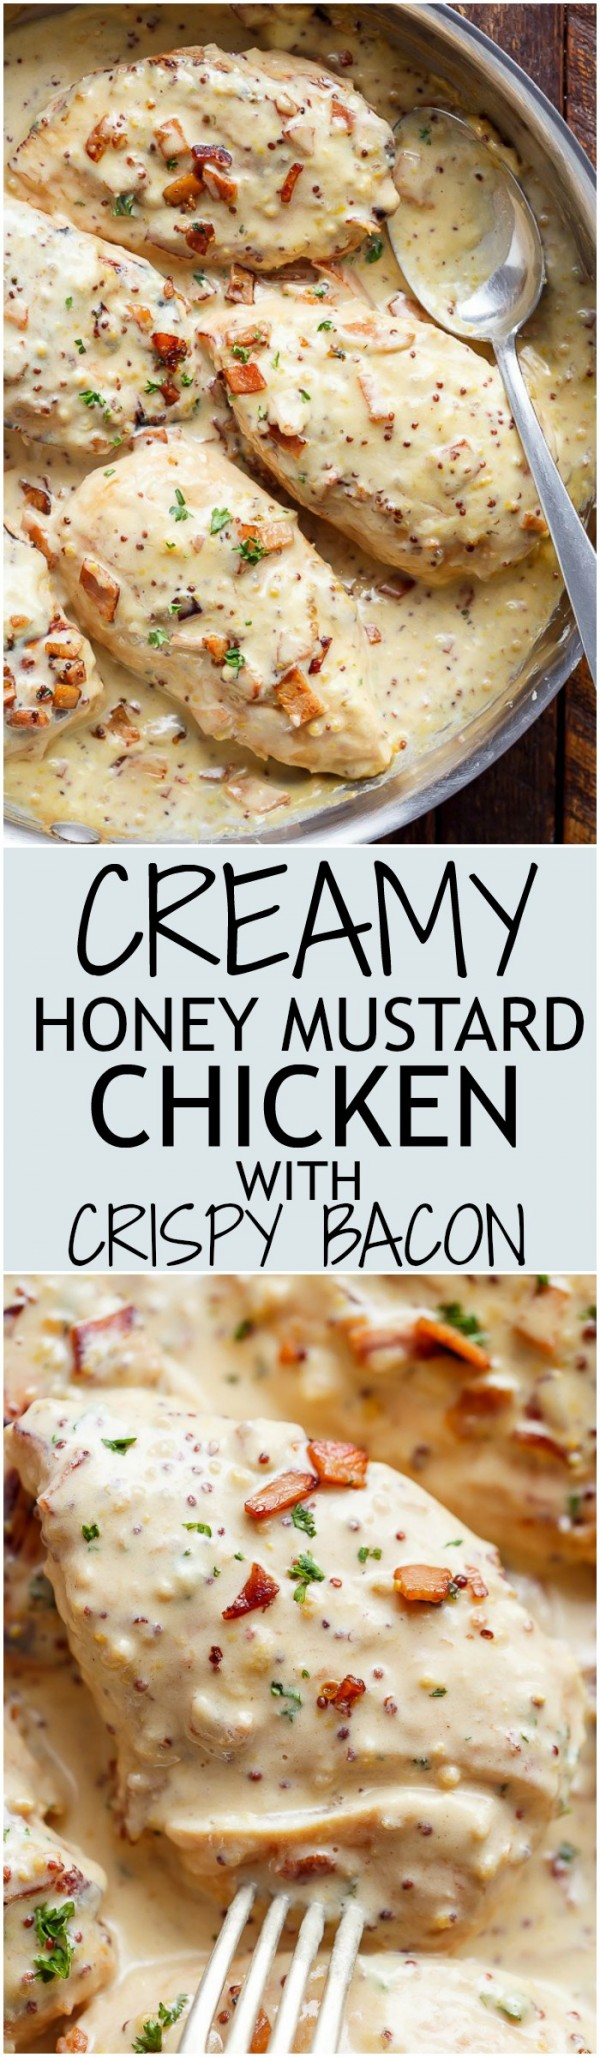 50 Best Chicken Recipes Ever - Get the recipe ♥ Creamy Honey Mustard Chicken with Crispy Bacon @recipes_to_go